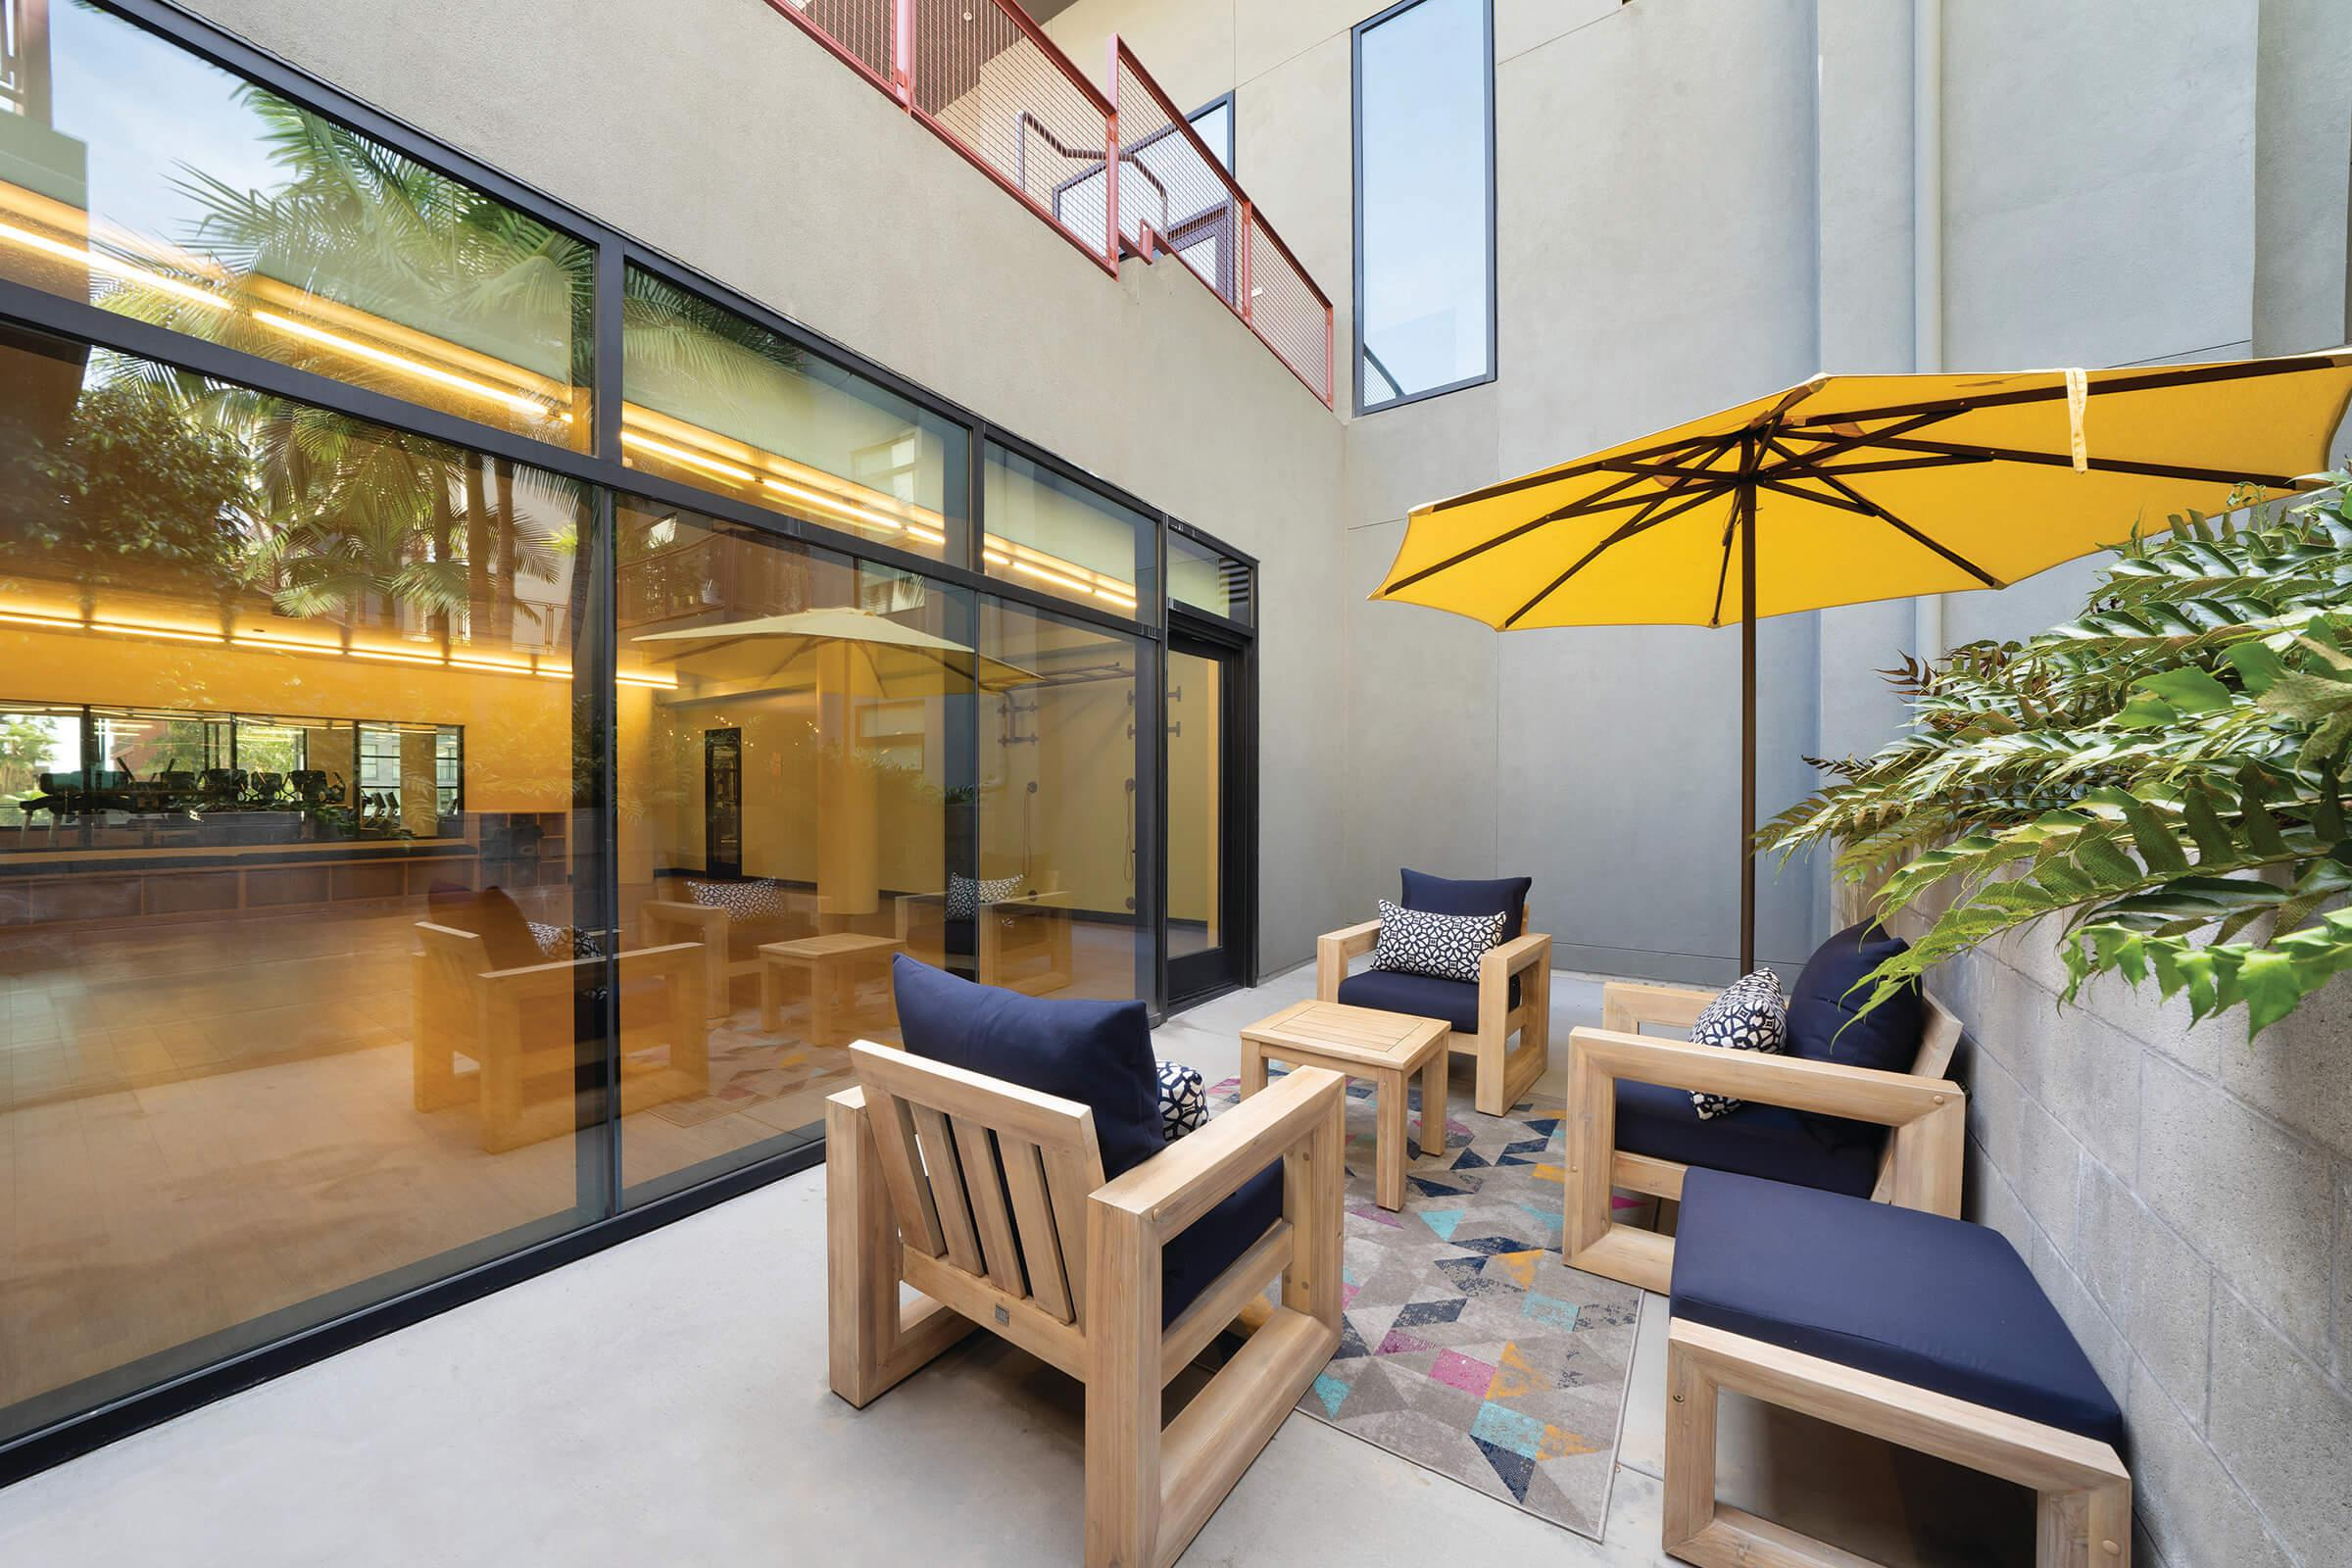 Community patio with couches and yellow umbrella